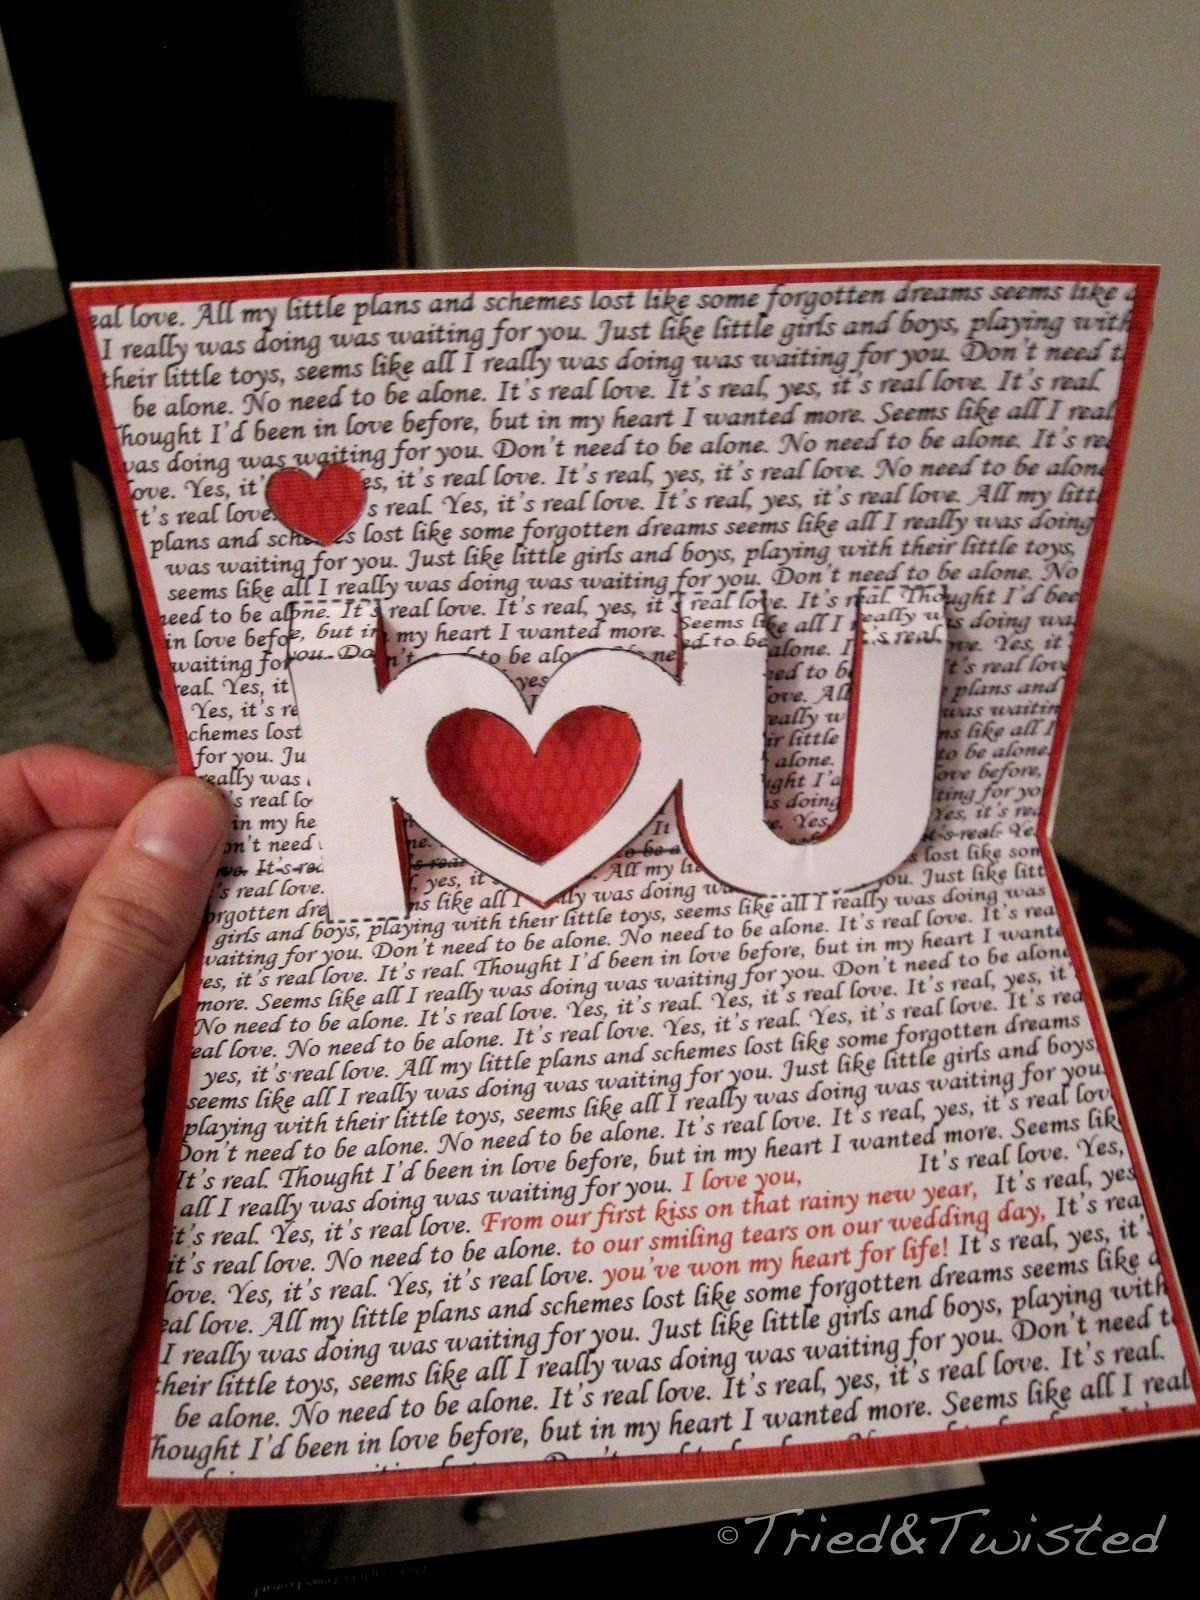 I Love You Pop Up Card Template Elegant Tried And Twisted Pop Up Valentine S Day Card Diy Valentines Cards Valentines Day Cards Handmade Diy Valentines Gifts